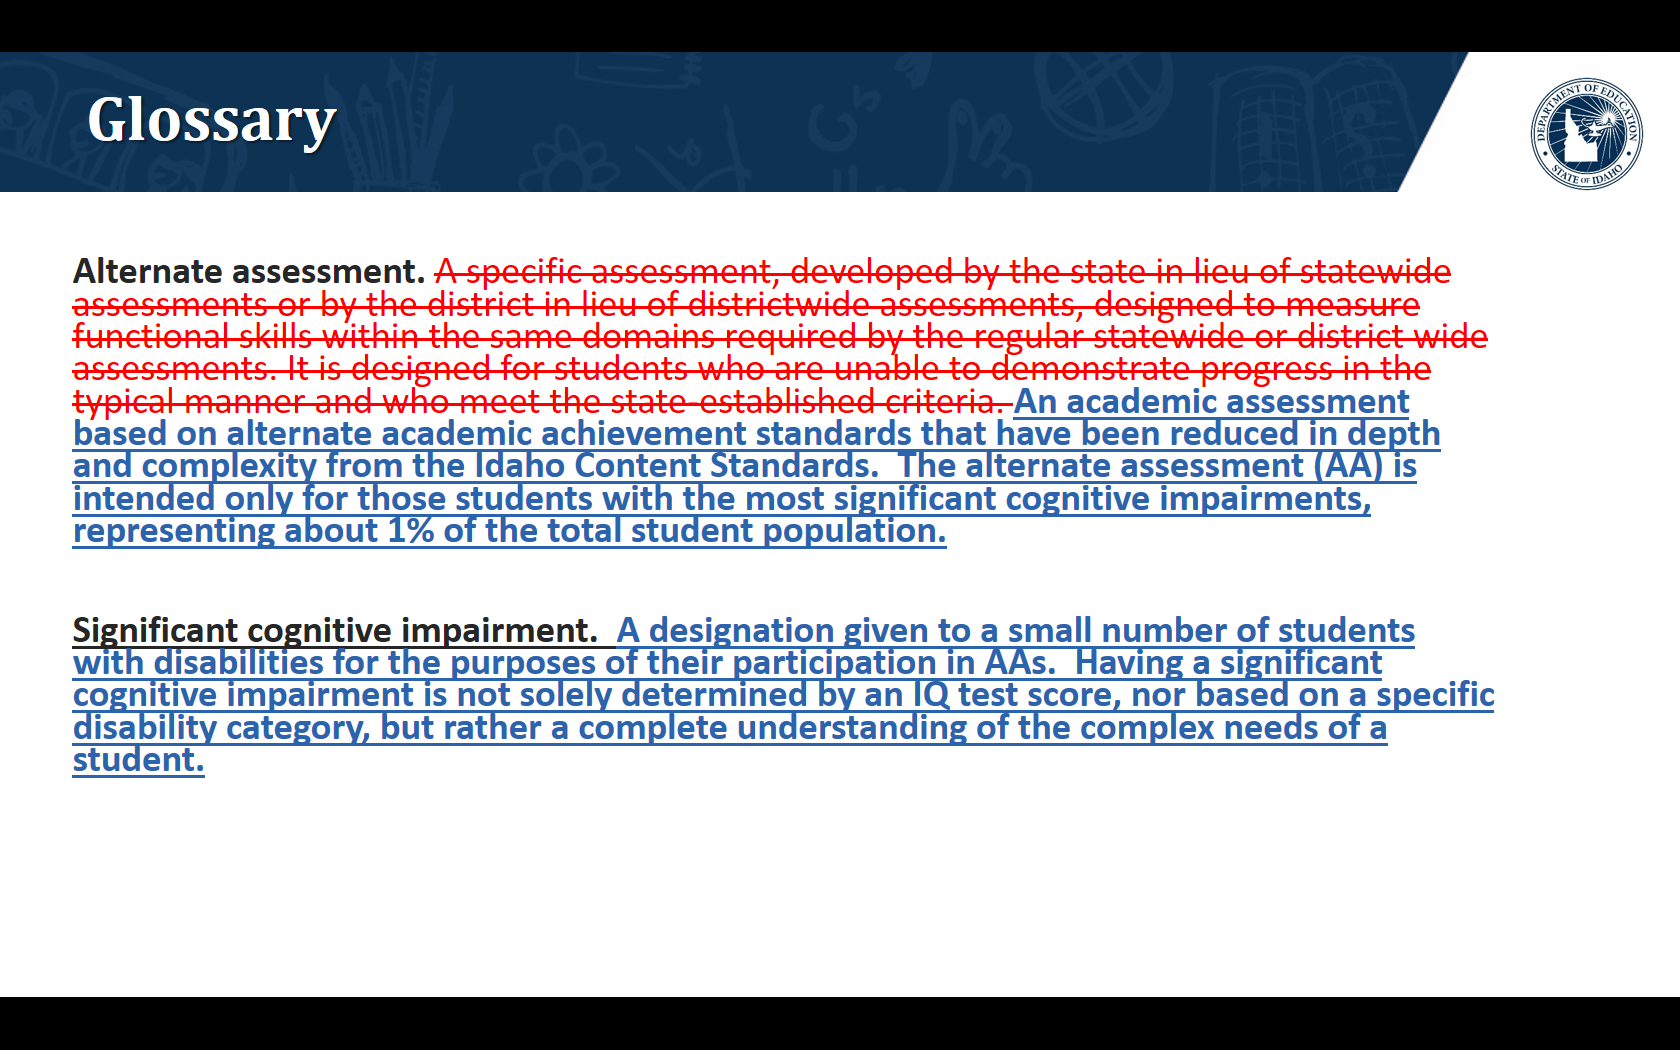 Glossary. We are proposing to modify the alternate assessment definition to An academic assessment based on alternate academic achievement standards that have been reduced in depth and complexity from the Idaho Content Standards.  The alternate assessment (AA) is intended only for those students with the most significant cognitive impairments, representing about 1% of the total student population.. We are proposing to add the definition to  Significant cognitive impairment.  A designation given to a small number of students with disabilities for the purposes of their participation in AAs.  Having a significant cognitive impairment is not solely determined by an IQ test score, nor based on a specific disability category, but rather a complete understanding of the complex needs of a student.